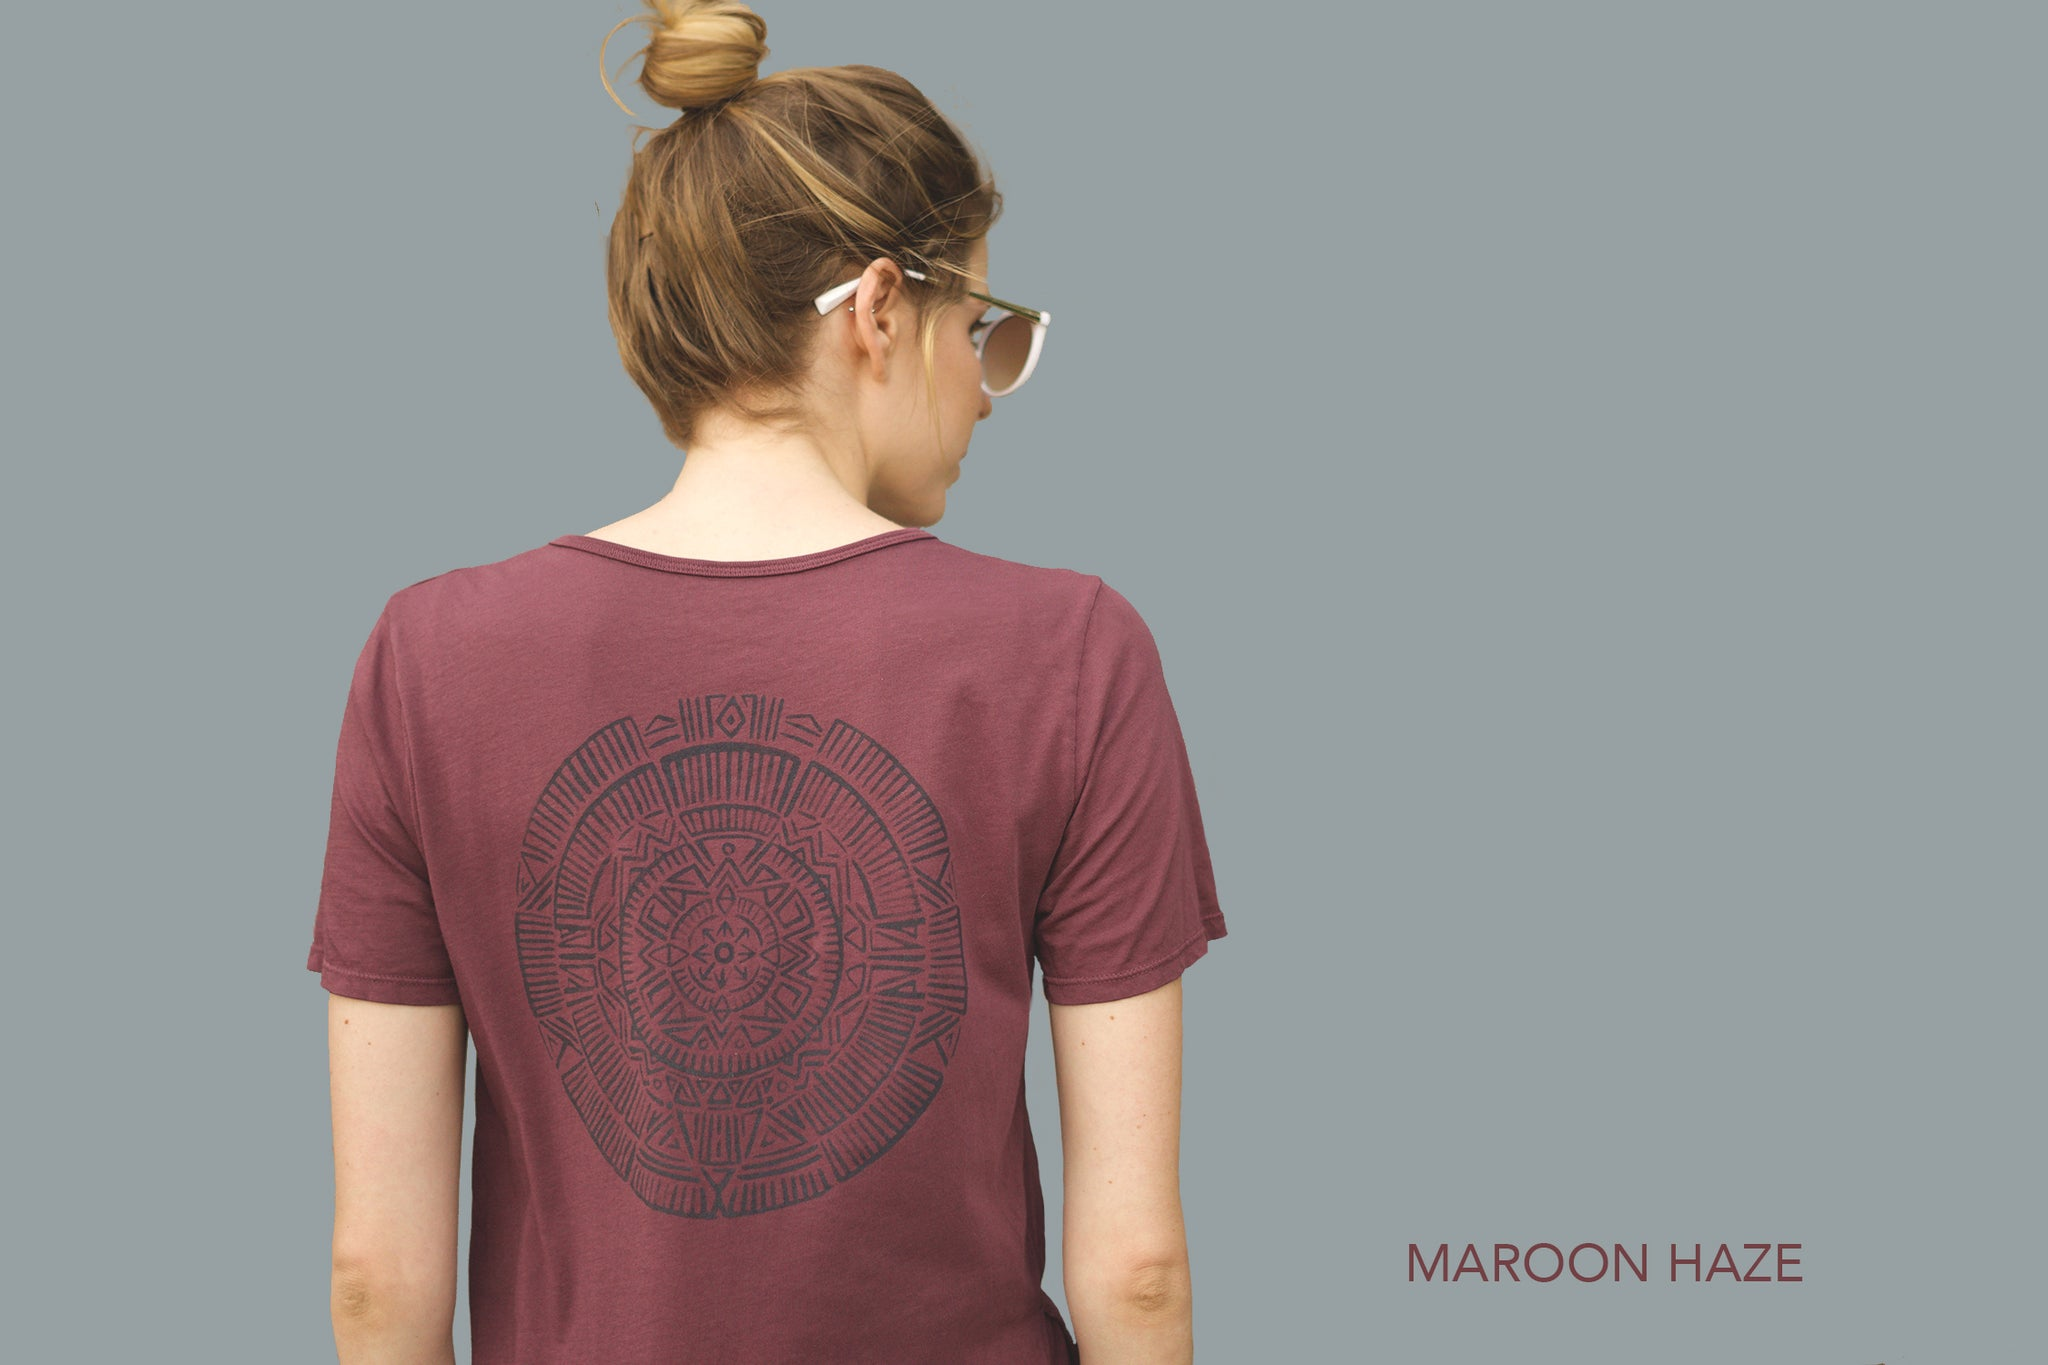 The Manoa Tee